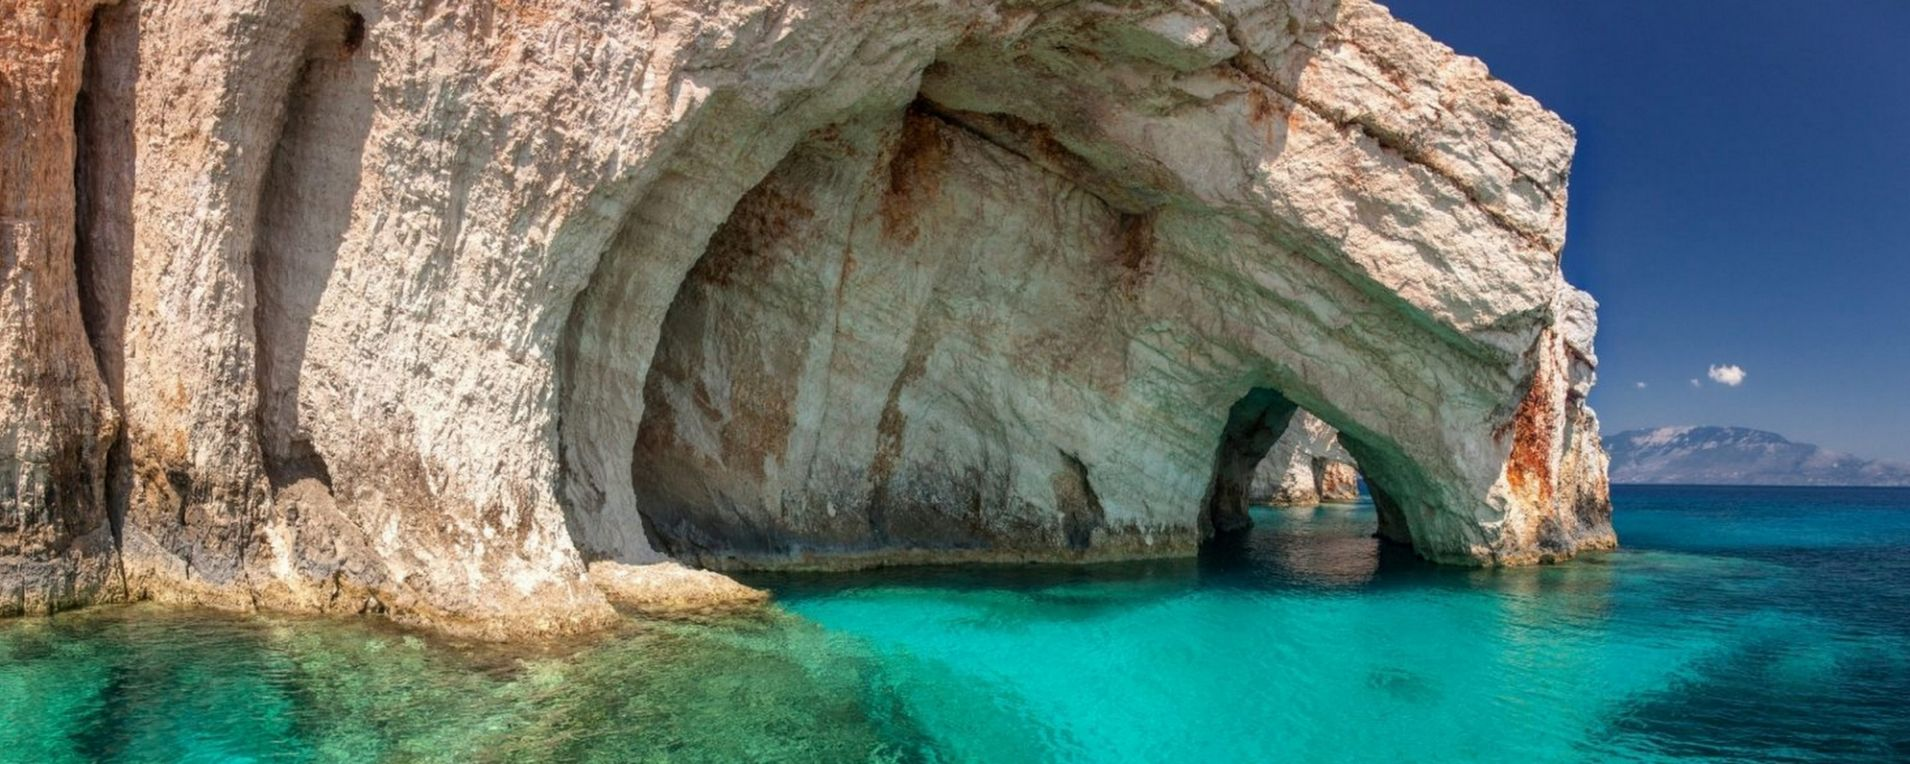 Zakynthos Holidays The Fiore Di Levante Of Ionian Sea